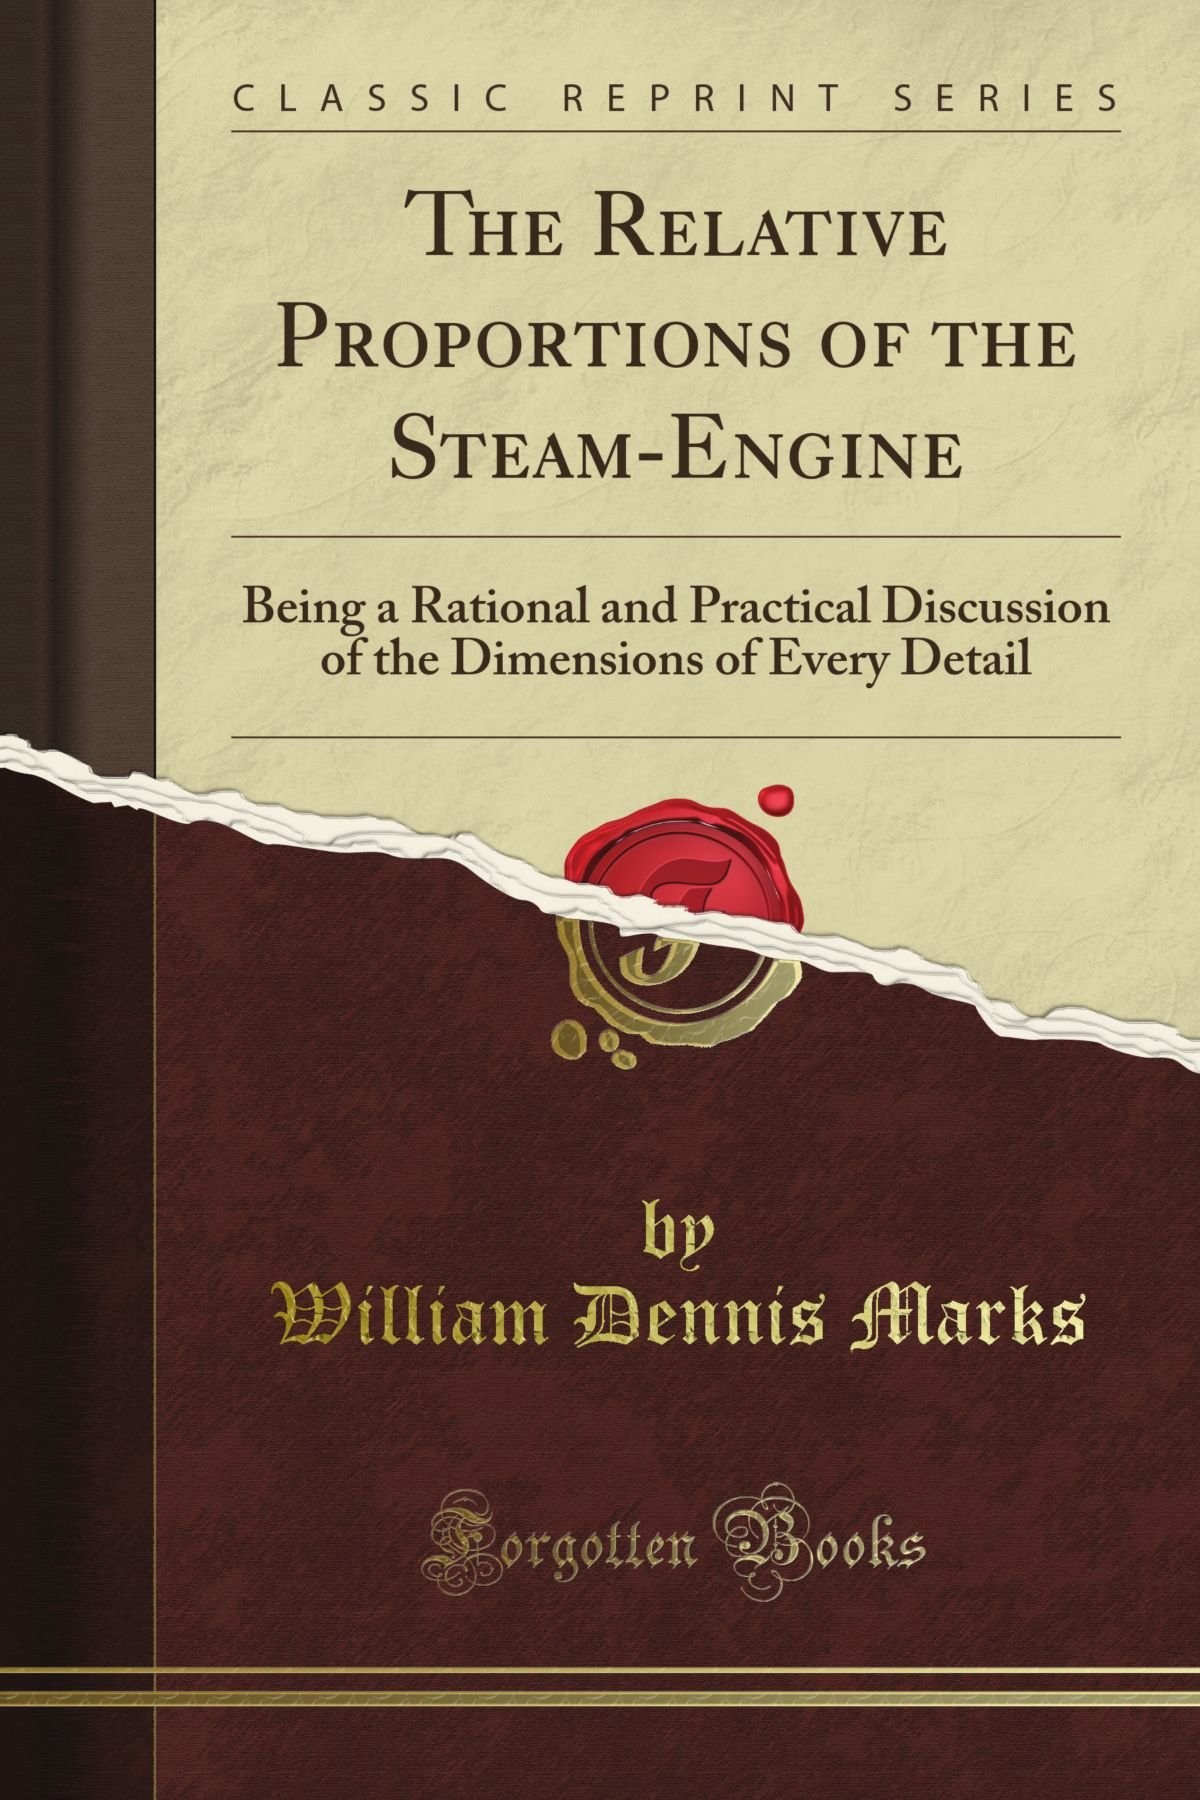 Read Online The Relative Proportions of the Steam-Engine: Being a Rational and Practical Discussion of the Dimensions of Every Detail (Classic Reprint) PDF